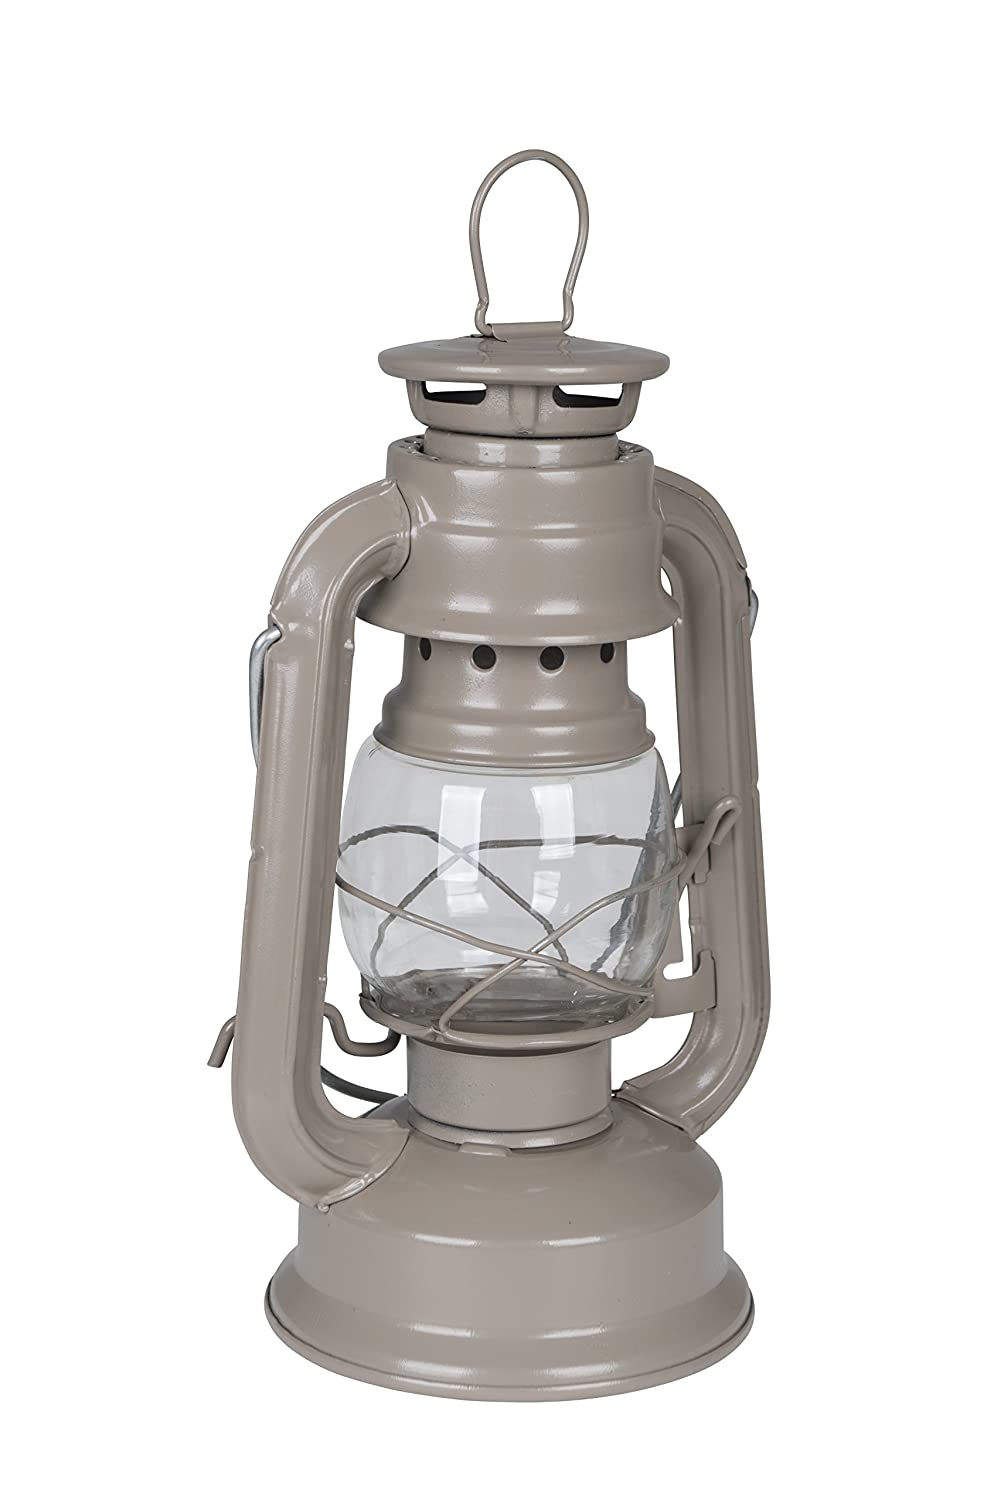 Bo-Camp Urban Outdoor Candle Hurricane Lamp, Steel, Taupe uk automotive VAOLZ 8219580